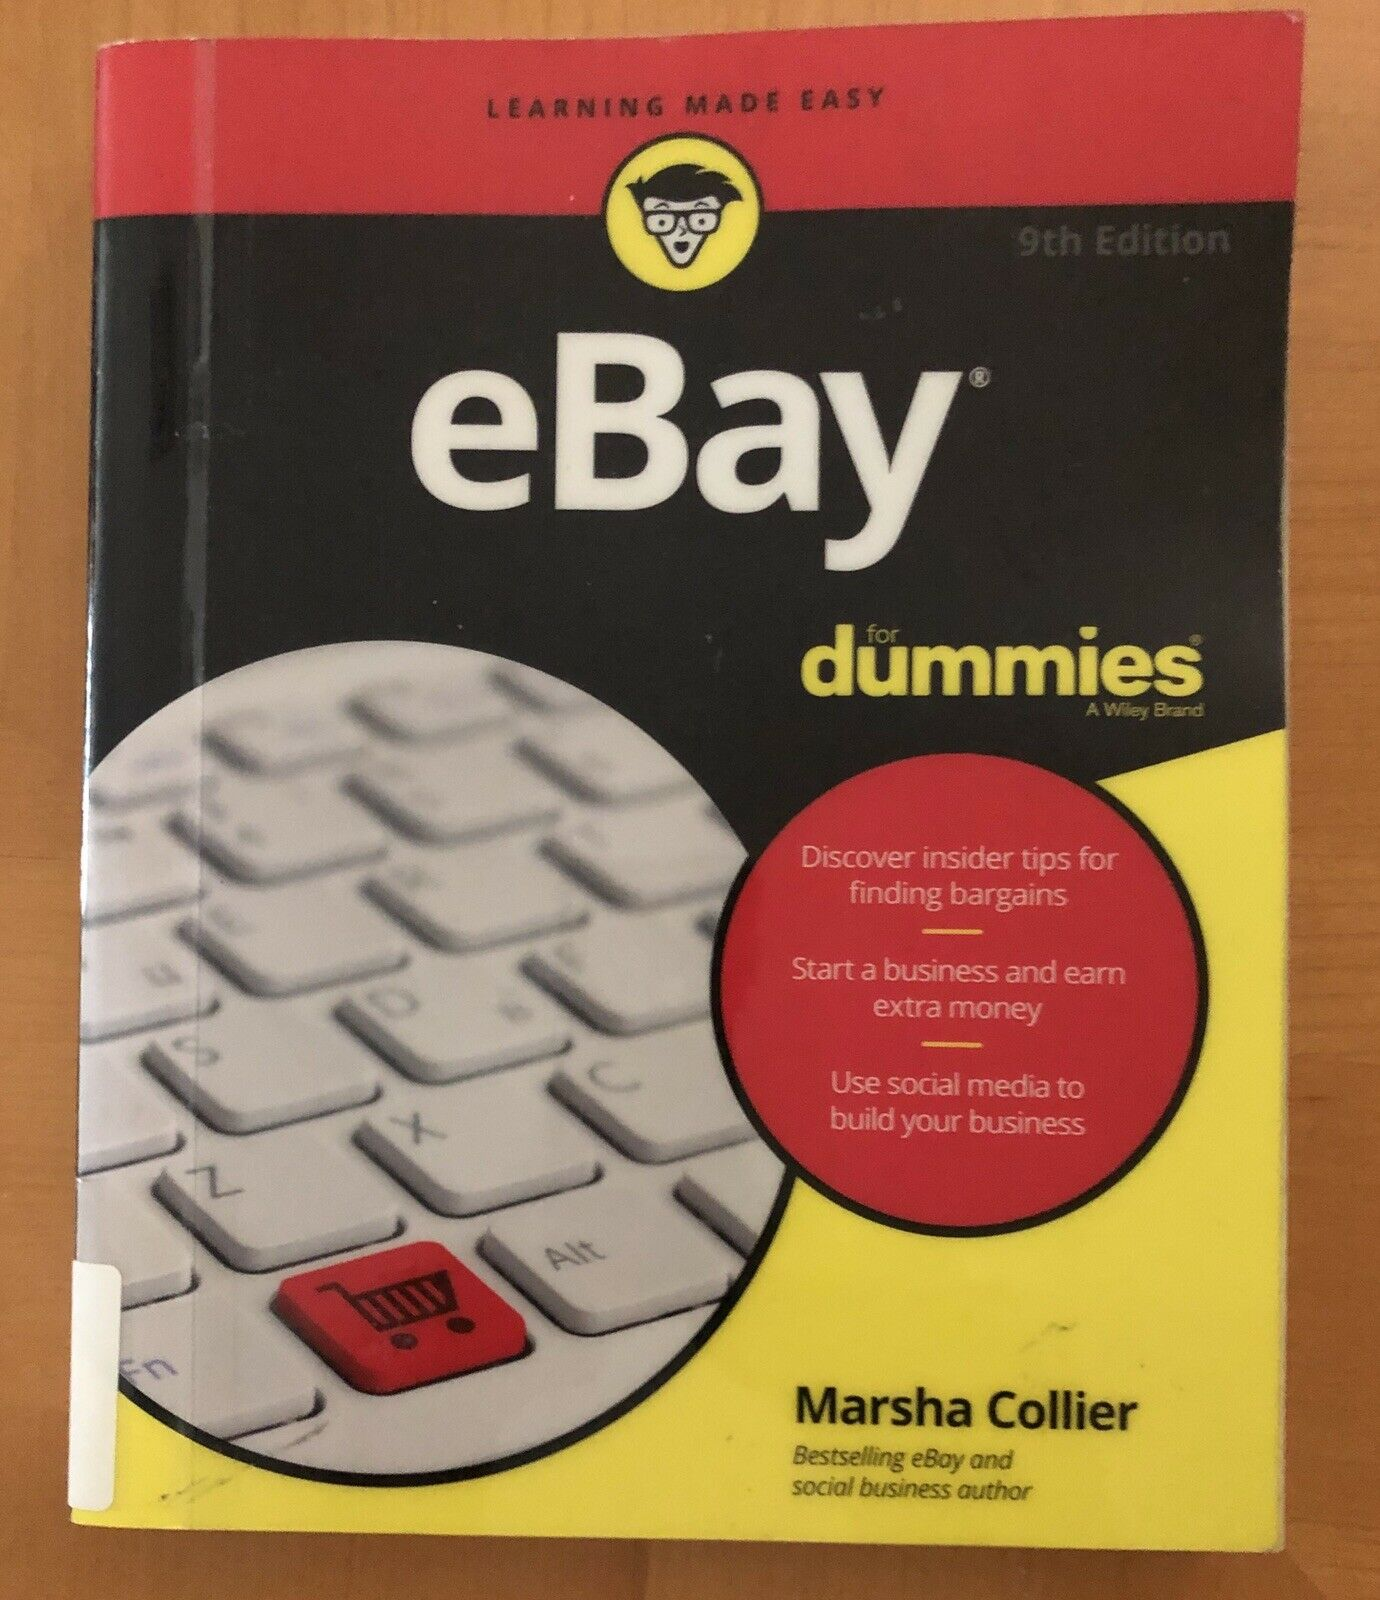 Ebay For Dummies By Marsha Collier 2016 Trade Paperback For Sale Online Ebay